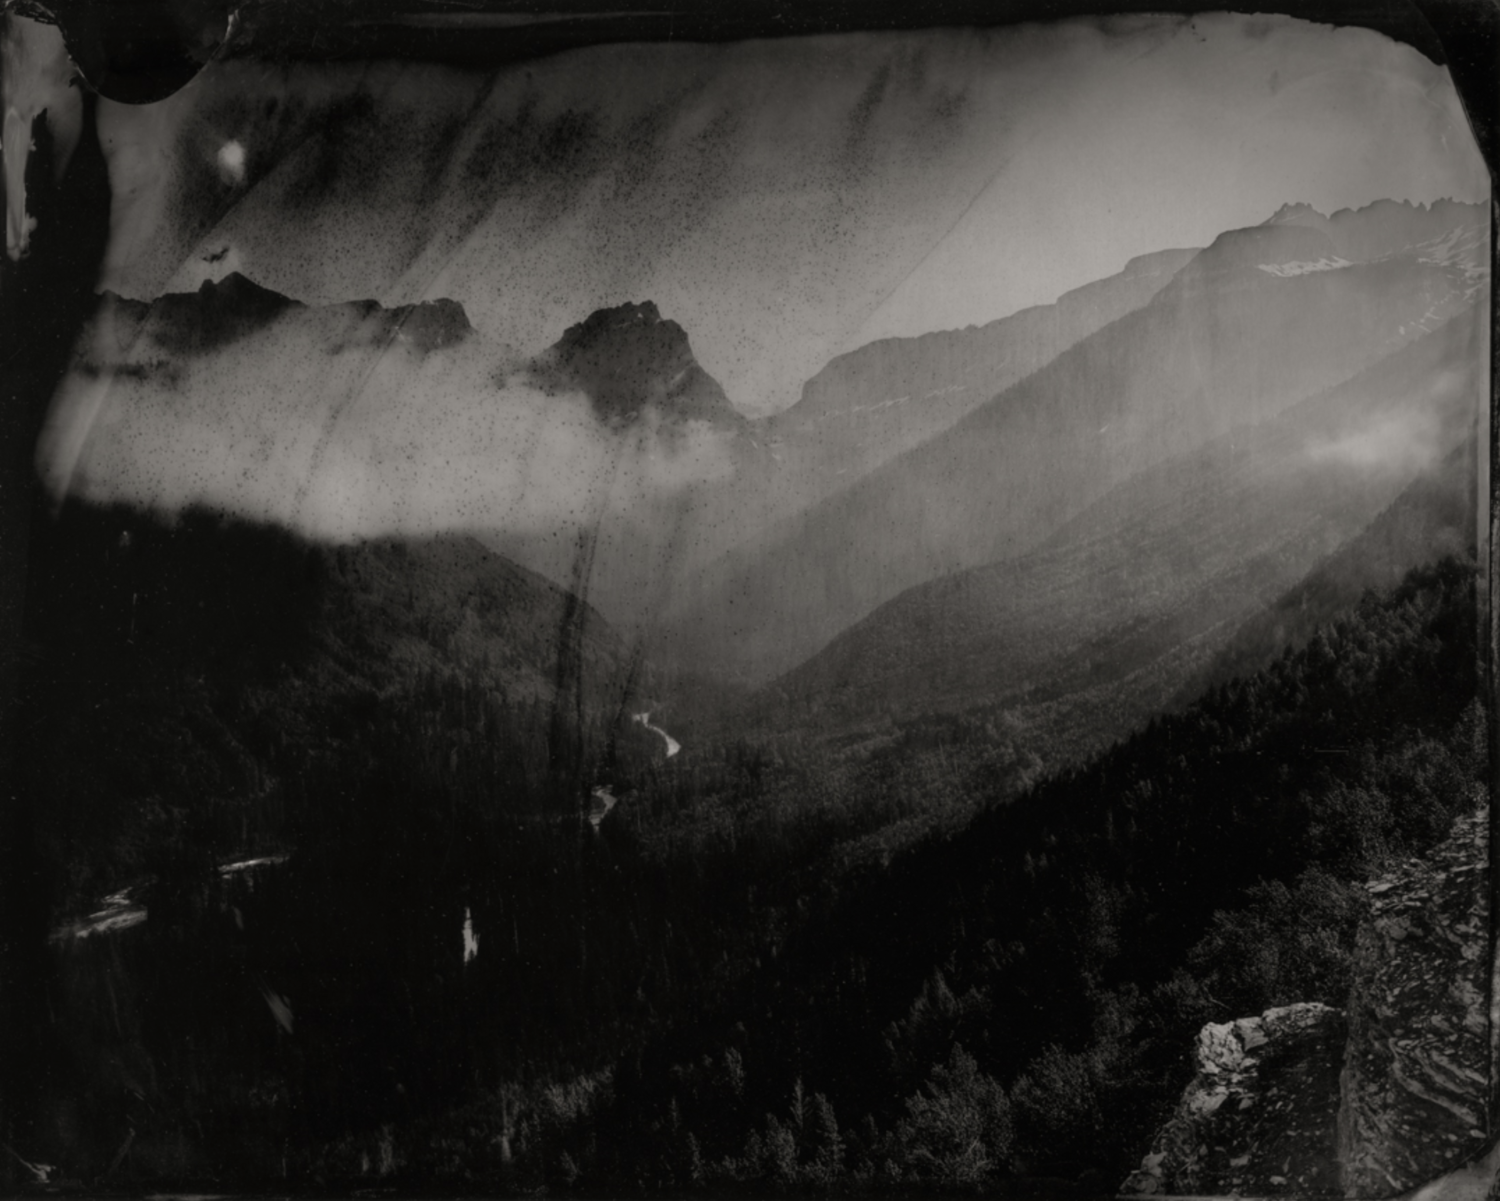 Mount Oberlin and Clouds #2 , 2019  Pigment print on Baryta paper  30 x 37.5 inches  Edition 1 of 7